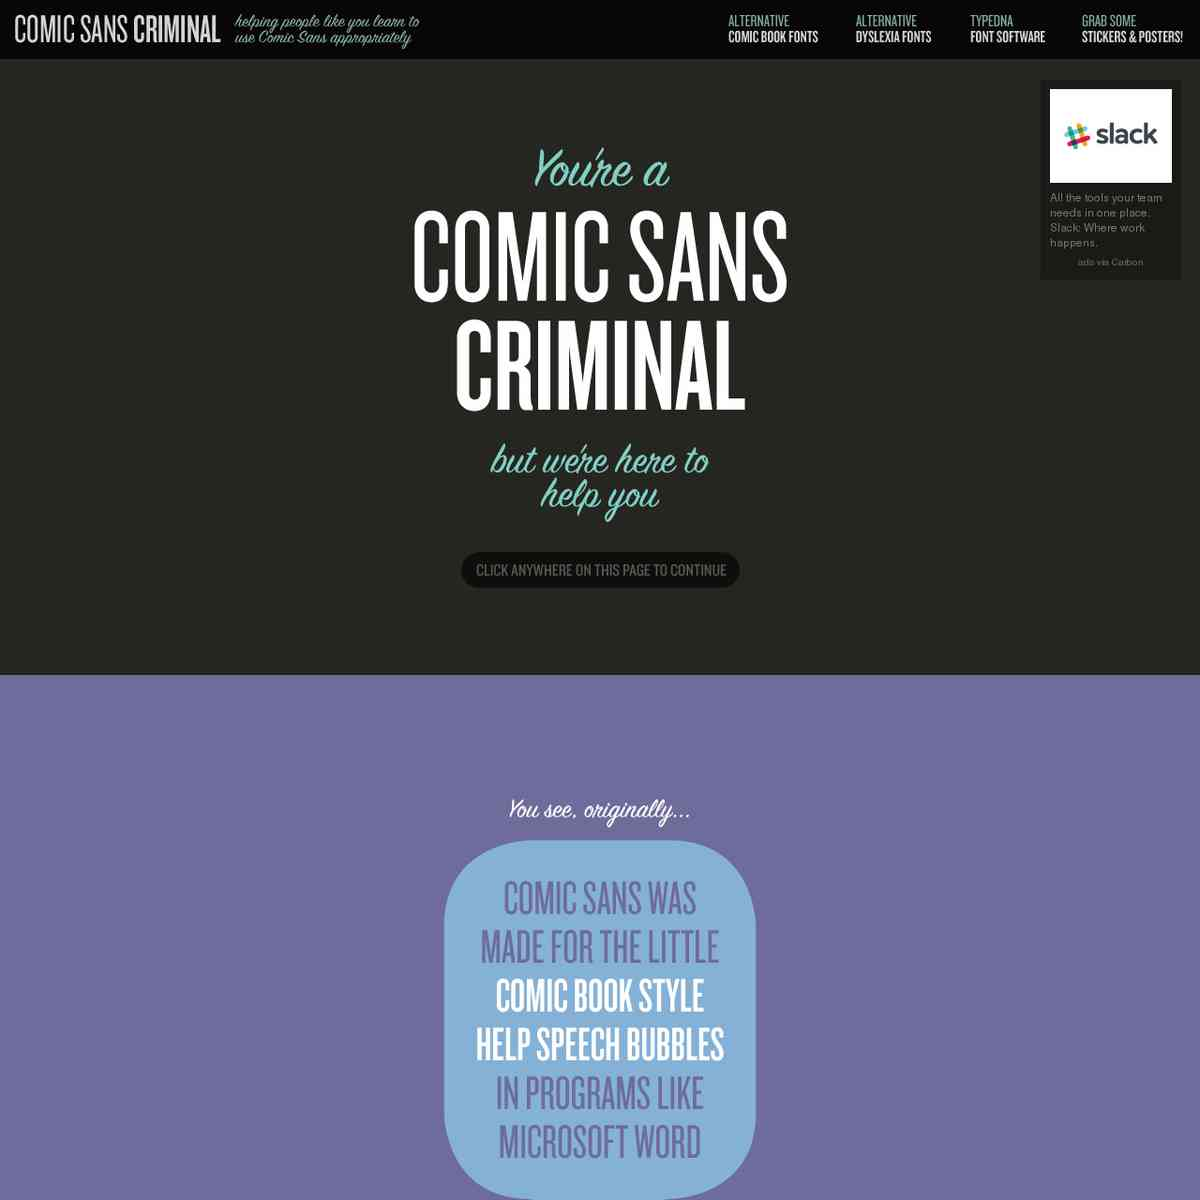 Comic Sans Criminal - There's help available for people like you!